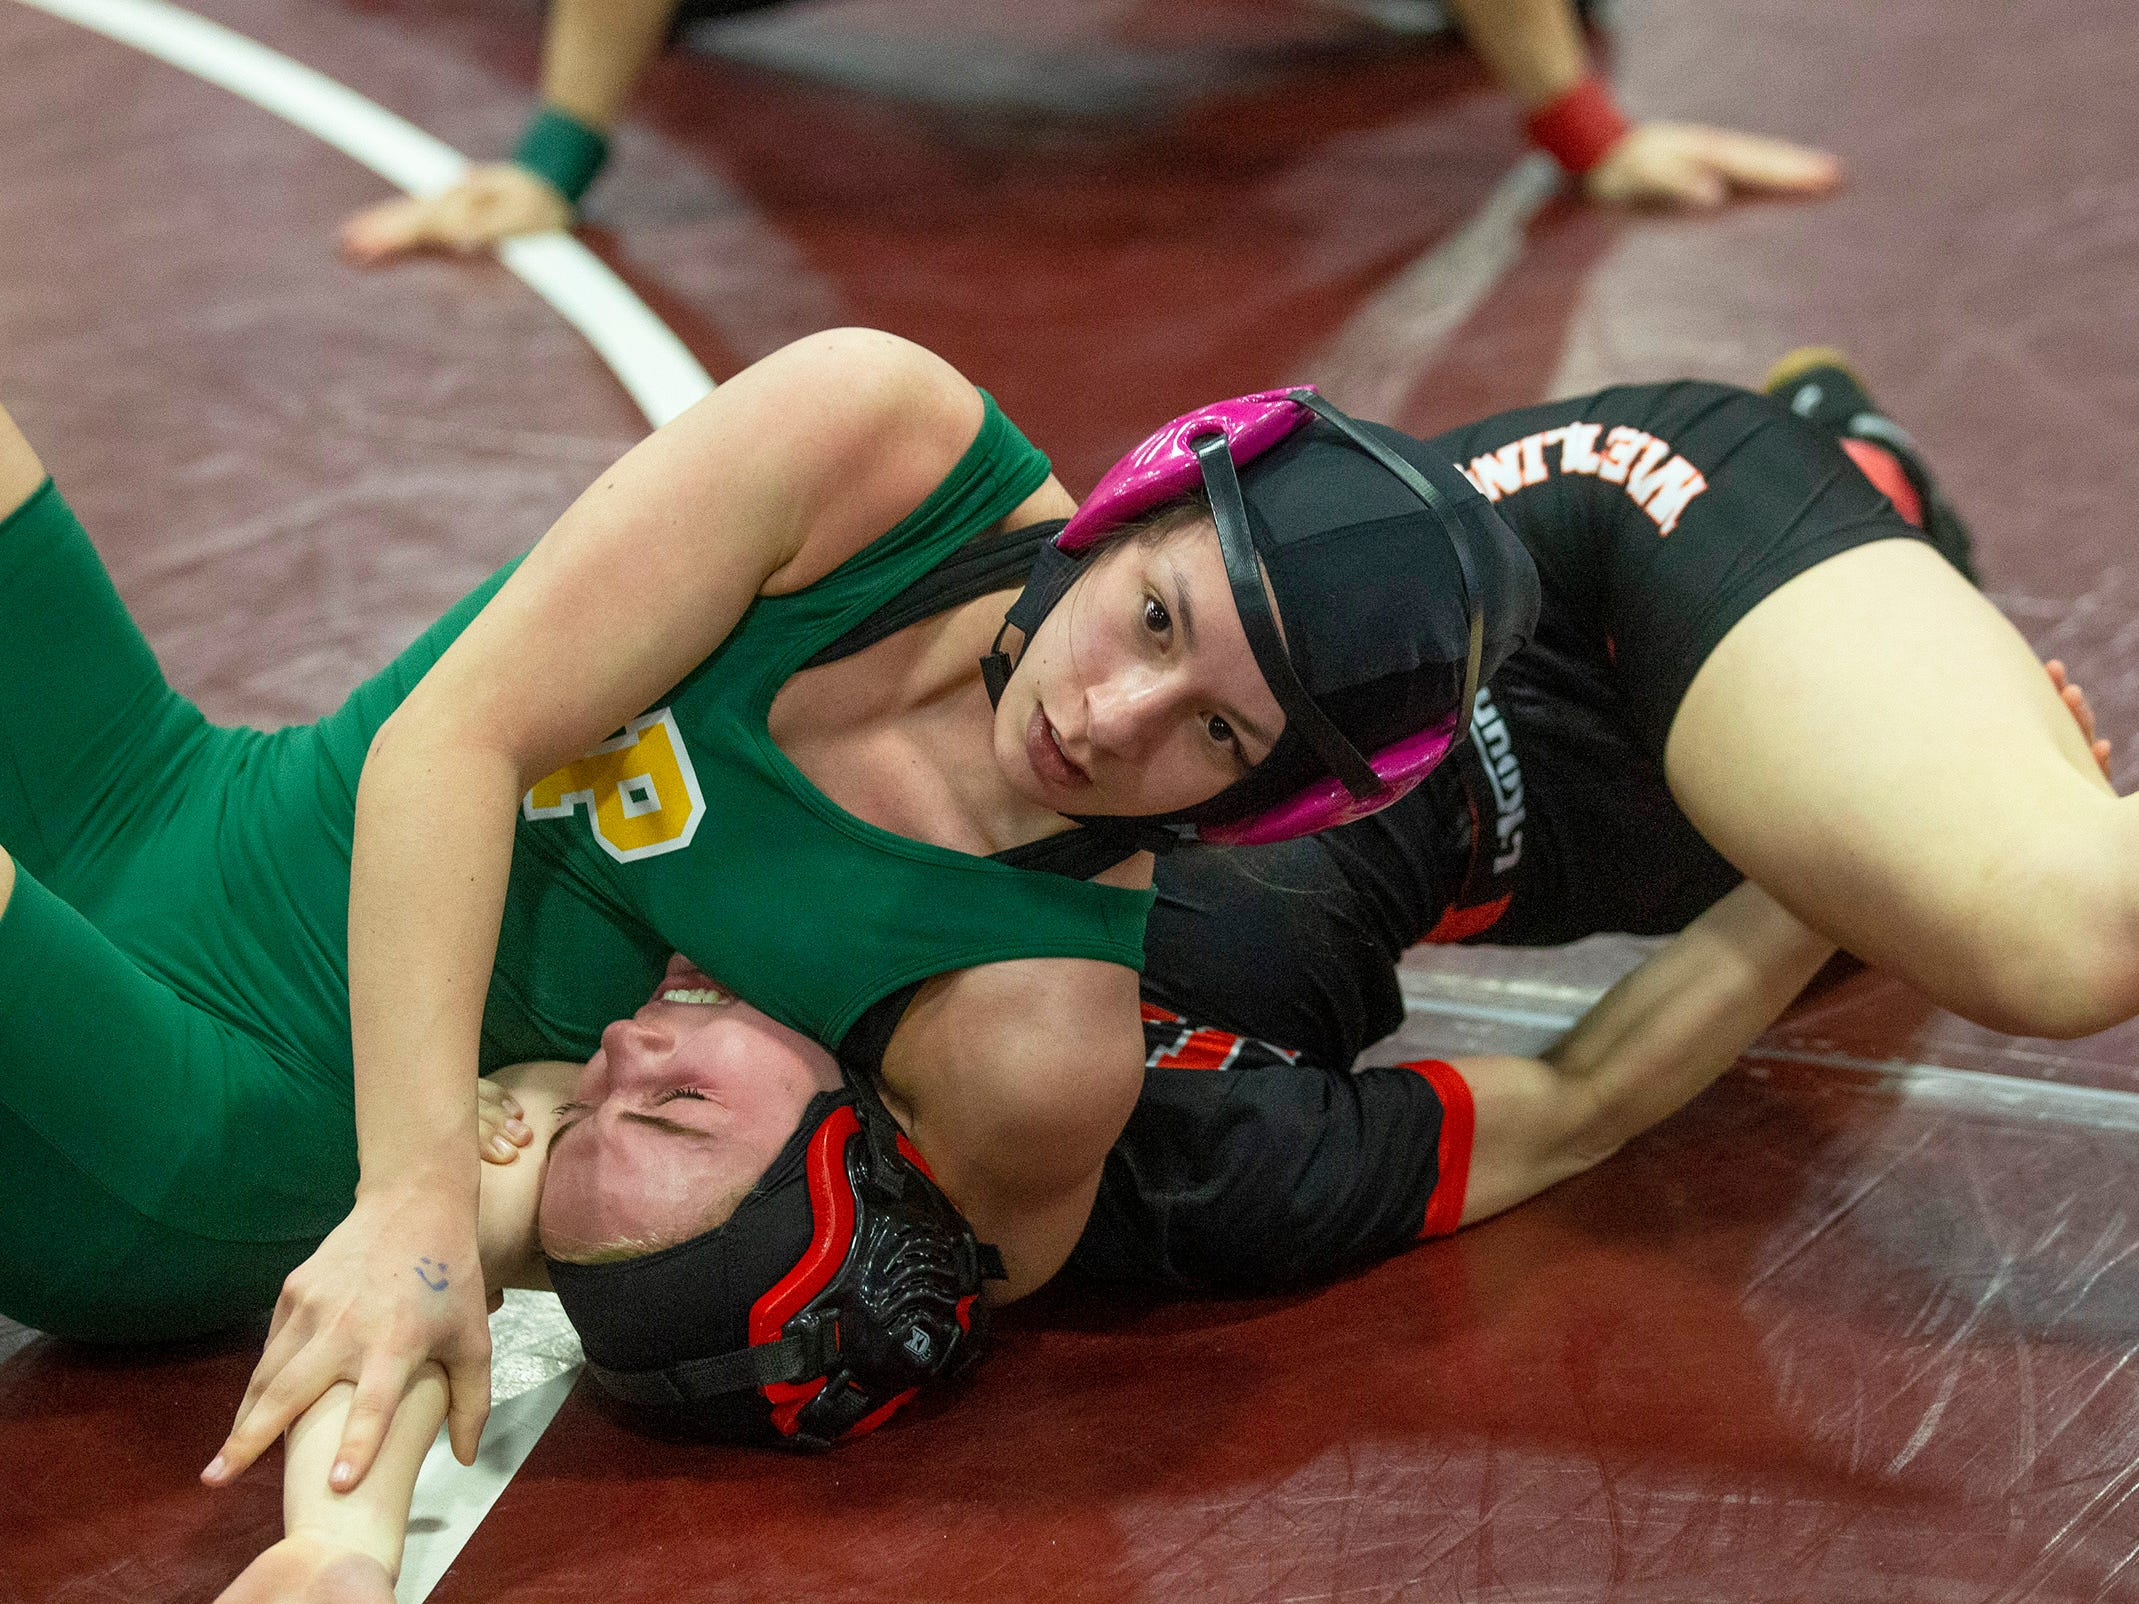 Pinelands Regional's Olivia Mena gets a pin against Jackson Memorial's Avery Meyers in their 118 lbs. bout. NJSIAA Girls Region Wrestling at Red Bank Regional High School in Red Bank NJ on February 17, 2019.